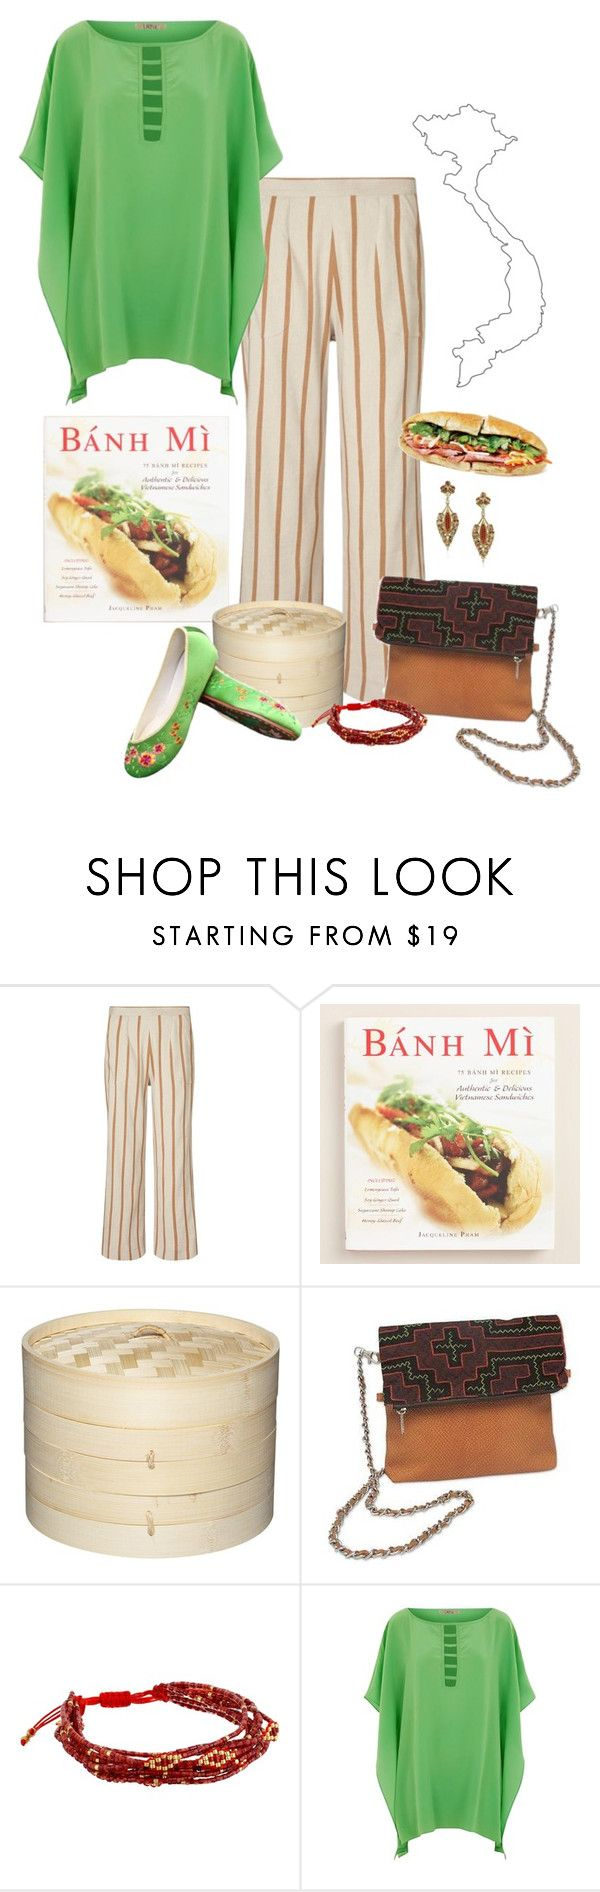 """""""Cookbook couture v18"""" by jennifertrimble ❤ liked on Polyvore featuring Jigsaw, Cost Plus World Market, NOVICA, Chan Luu and Lazul"""